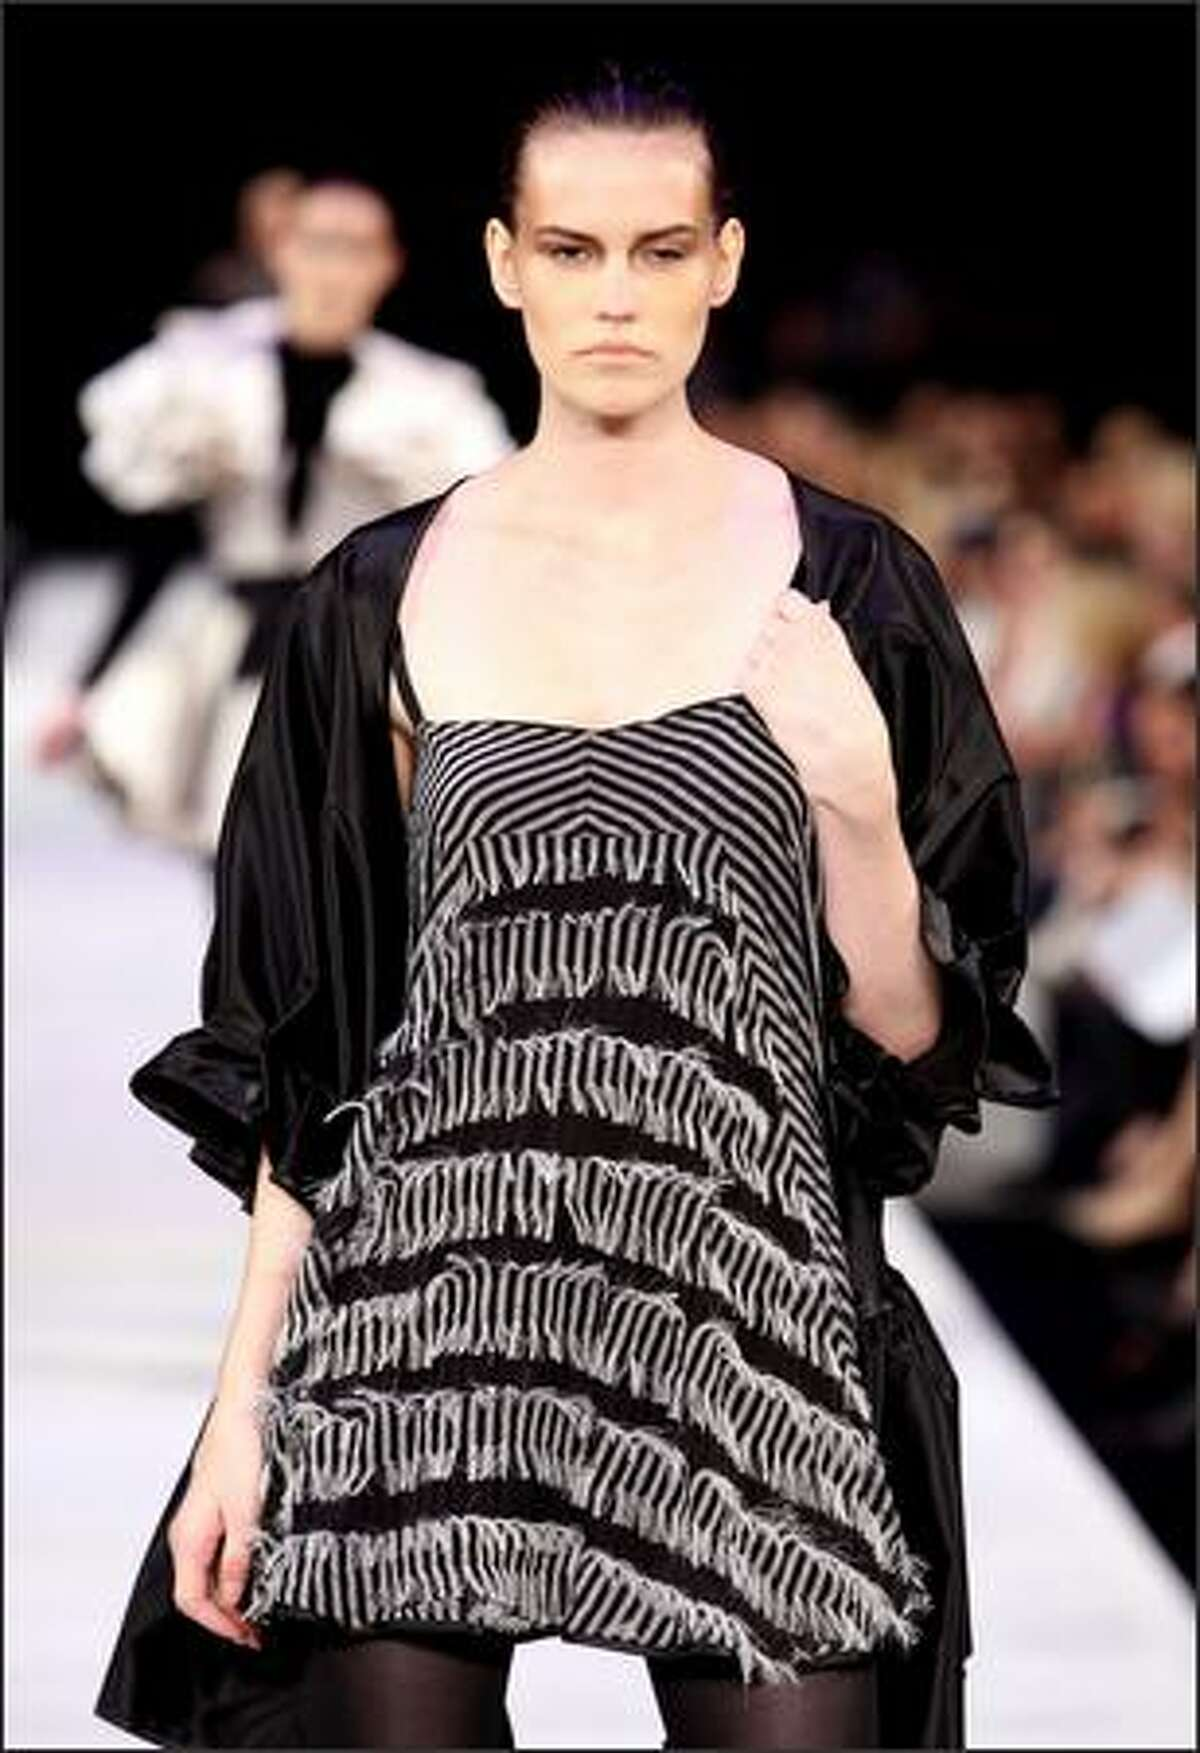 A model showcases a design on the catwalk by Made in Donald at the Independent Runway presented by Network Ten during L'Oreal Melbourne Fashion Festival 2009 at the Peninsula Central Pier Docklands in Melbourne, Australia.